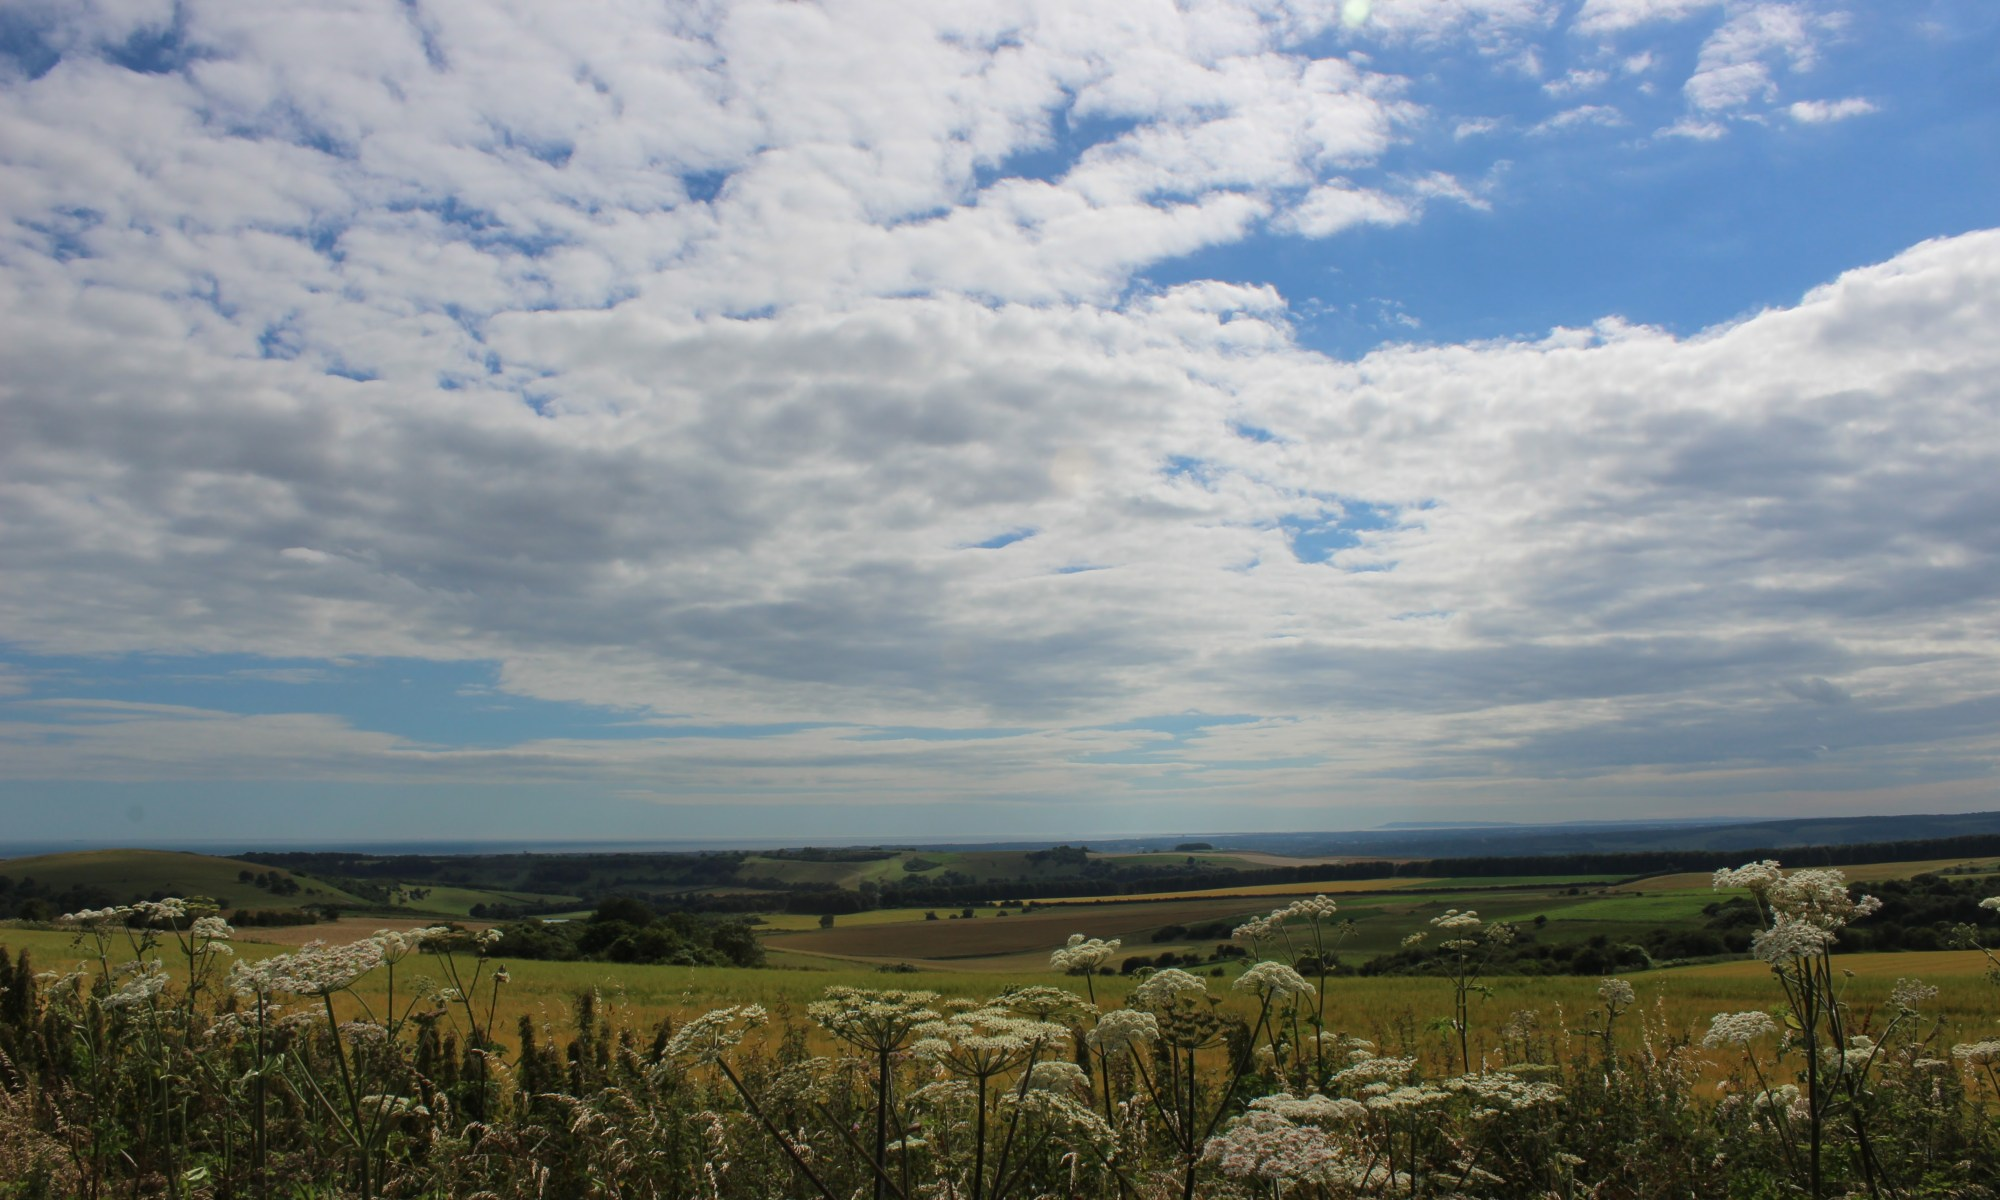 A view of the South Downs near Storrington